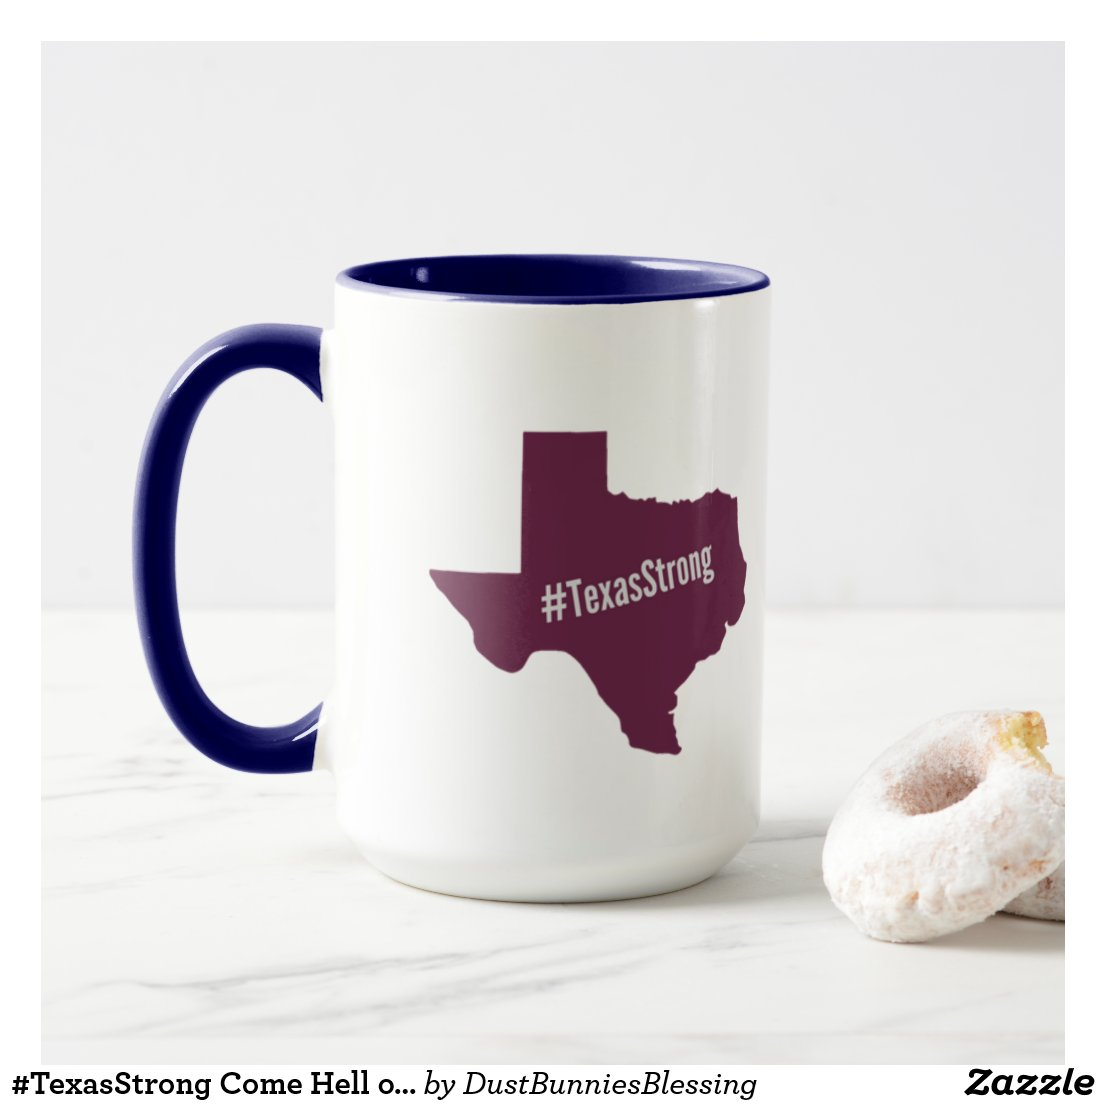 #TexasStrong Come Hell or High Water Mug